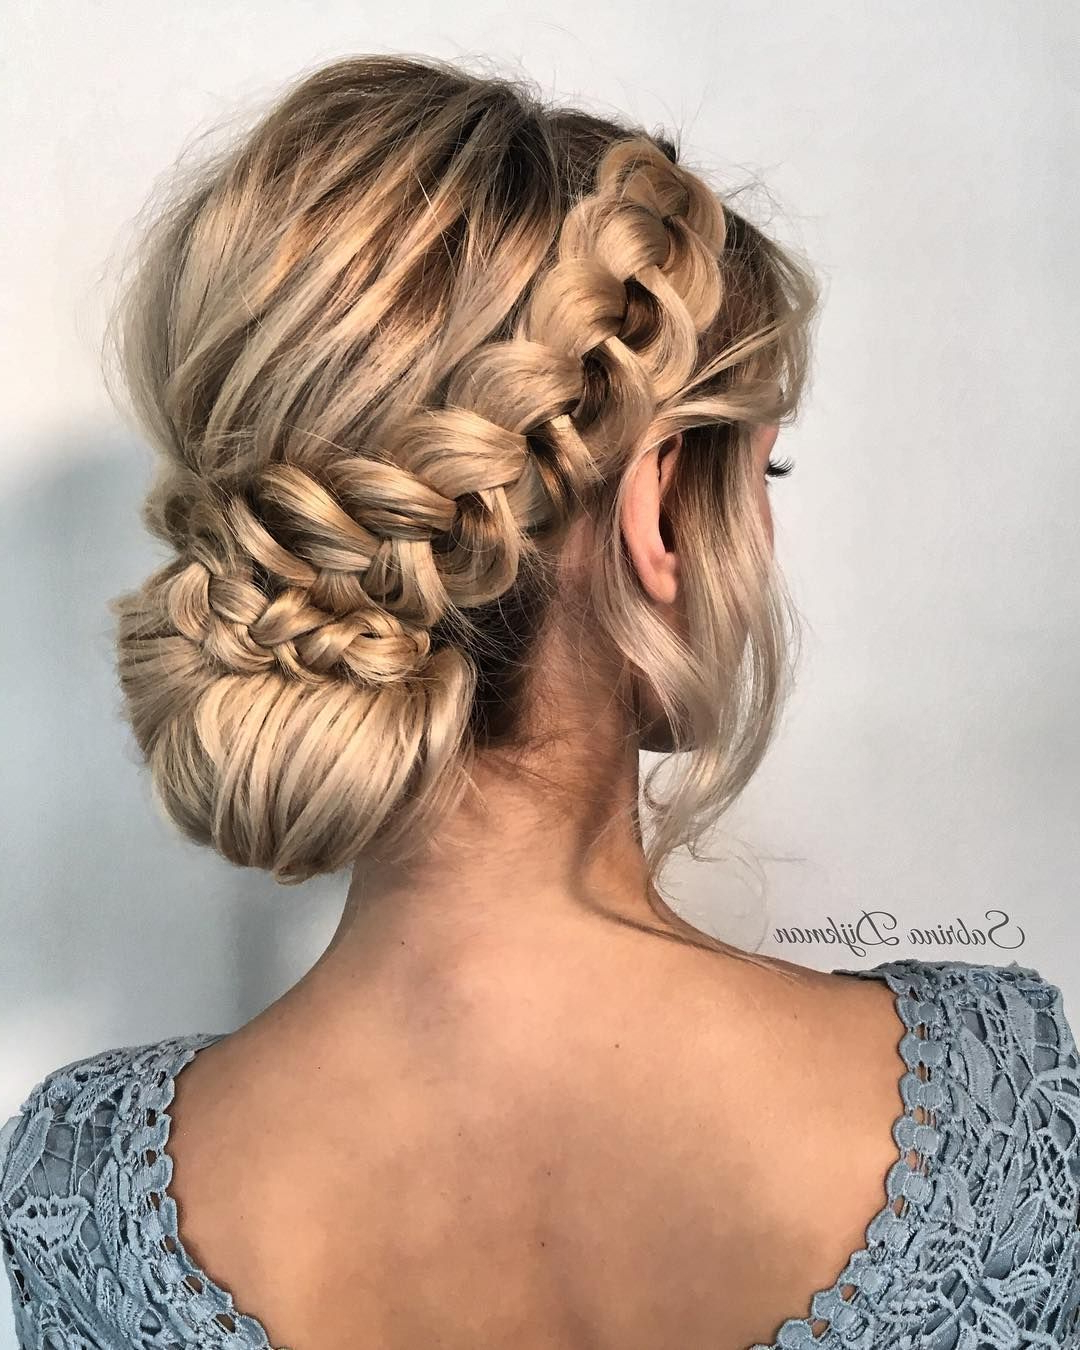 Beautiful Wedding Braided Updo Hairstyle ,messy Updo Wedding Pertaining To Best And Newest Crown Braid Updo Hairstyles (View 7 of 20)